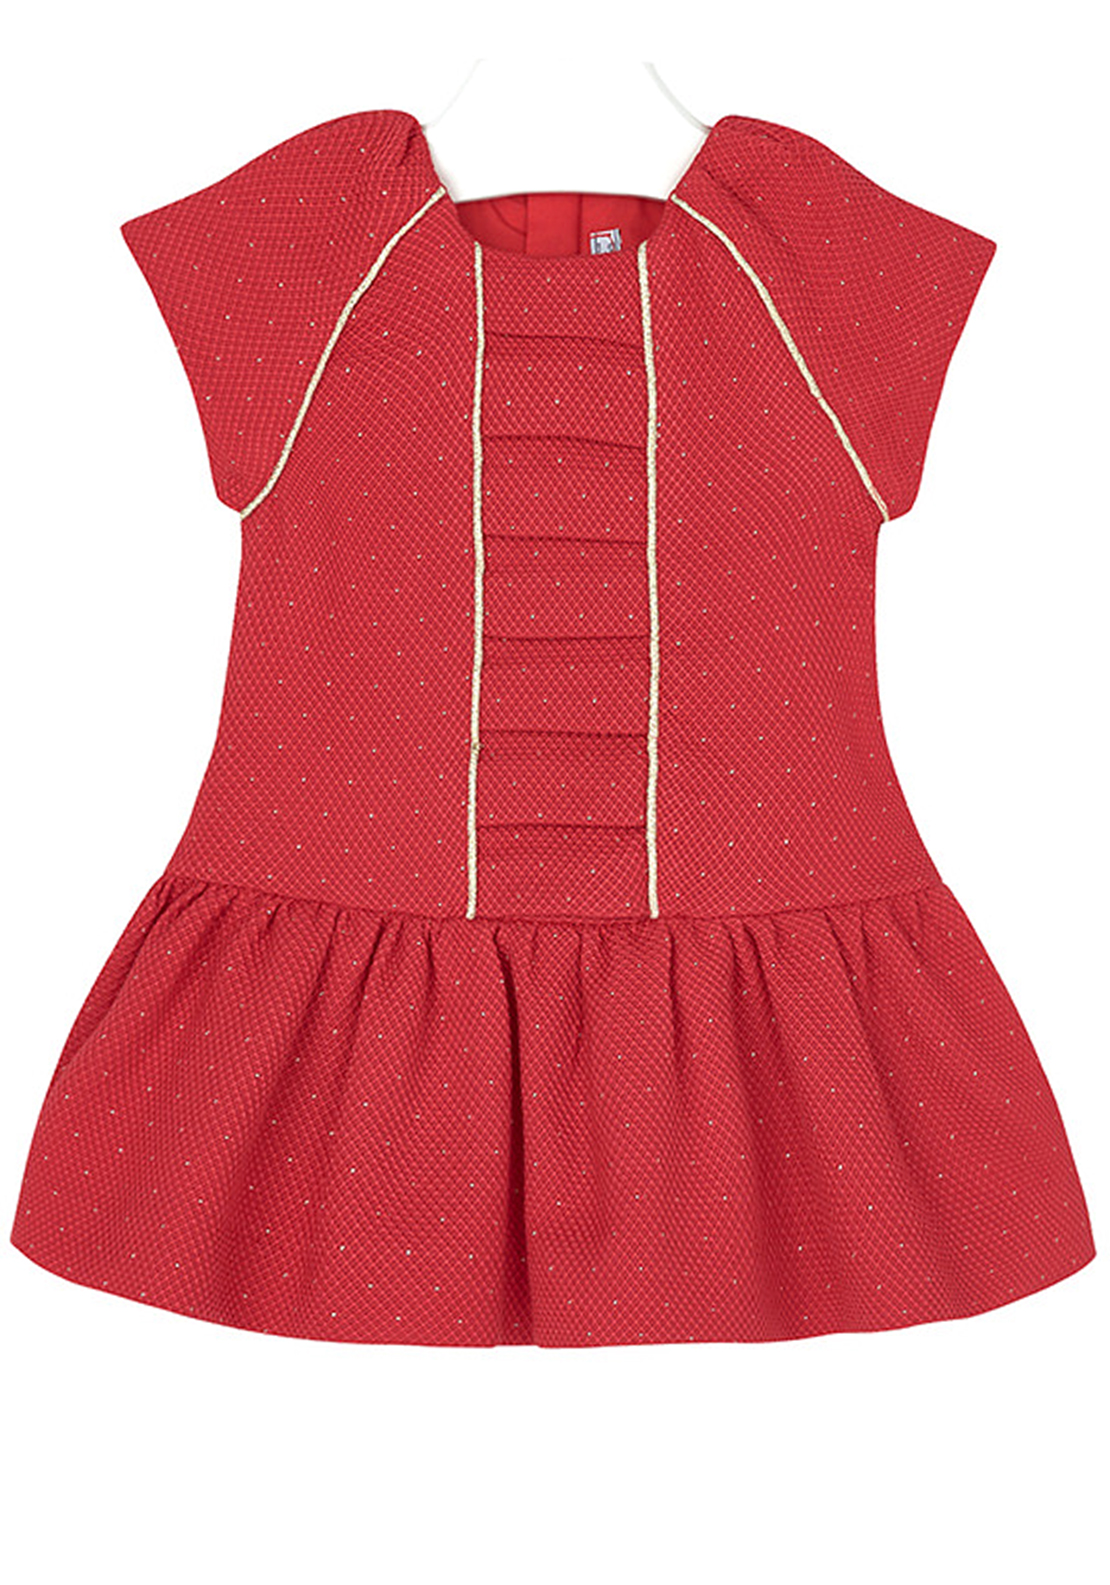 Mayoral Baby Girls Pique Metallic Dress, Red